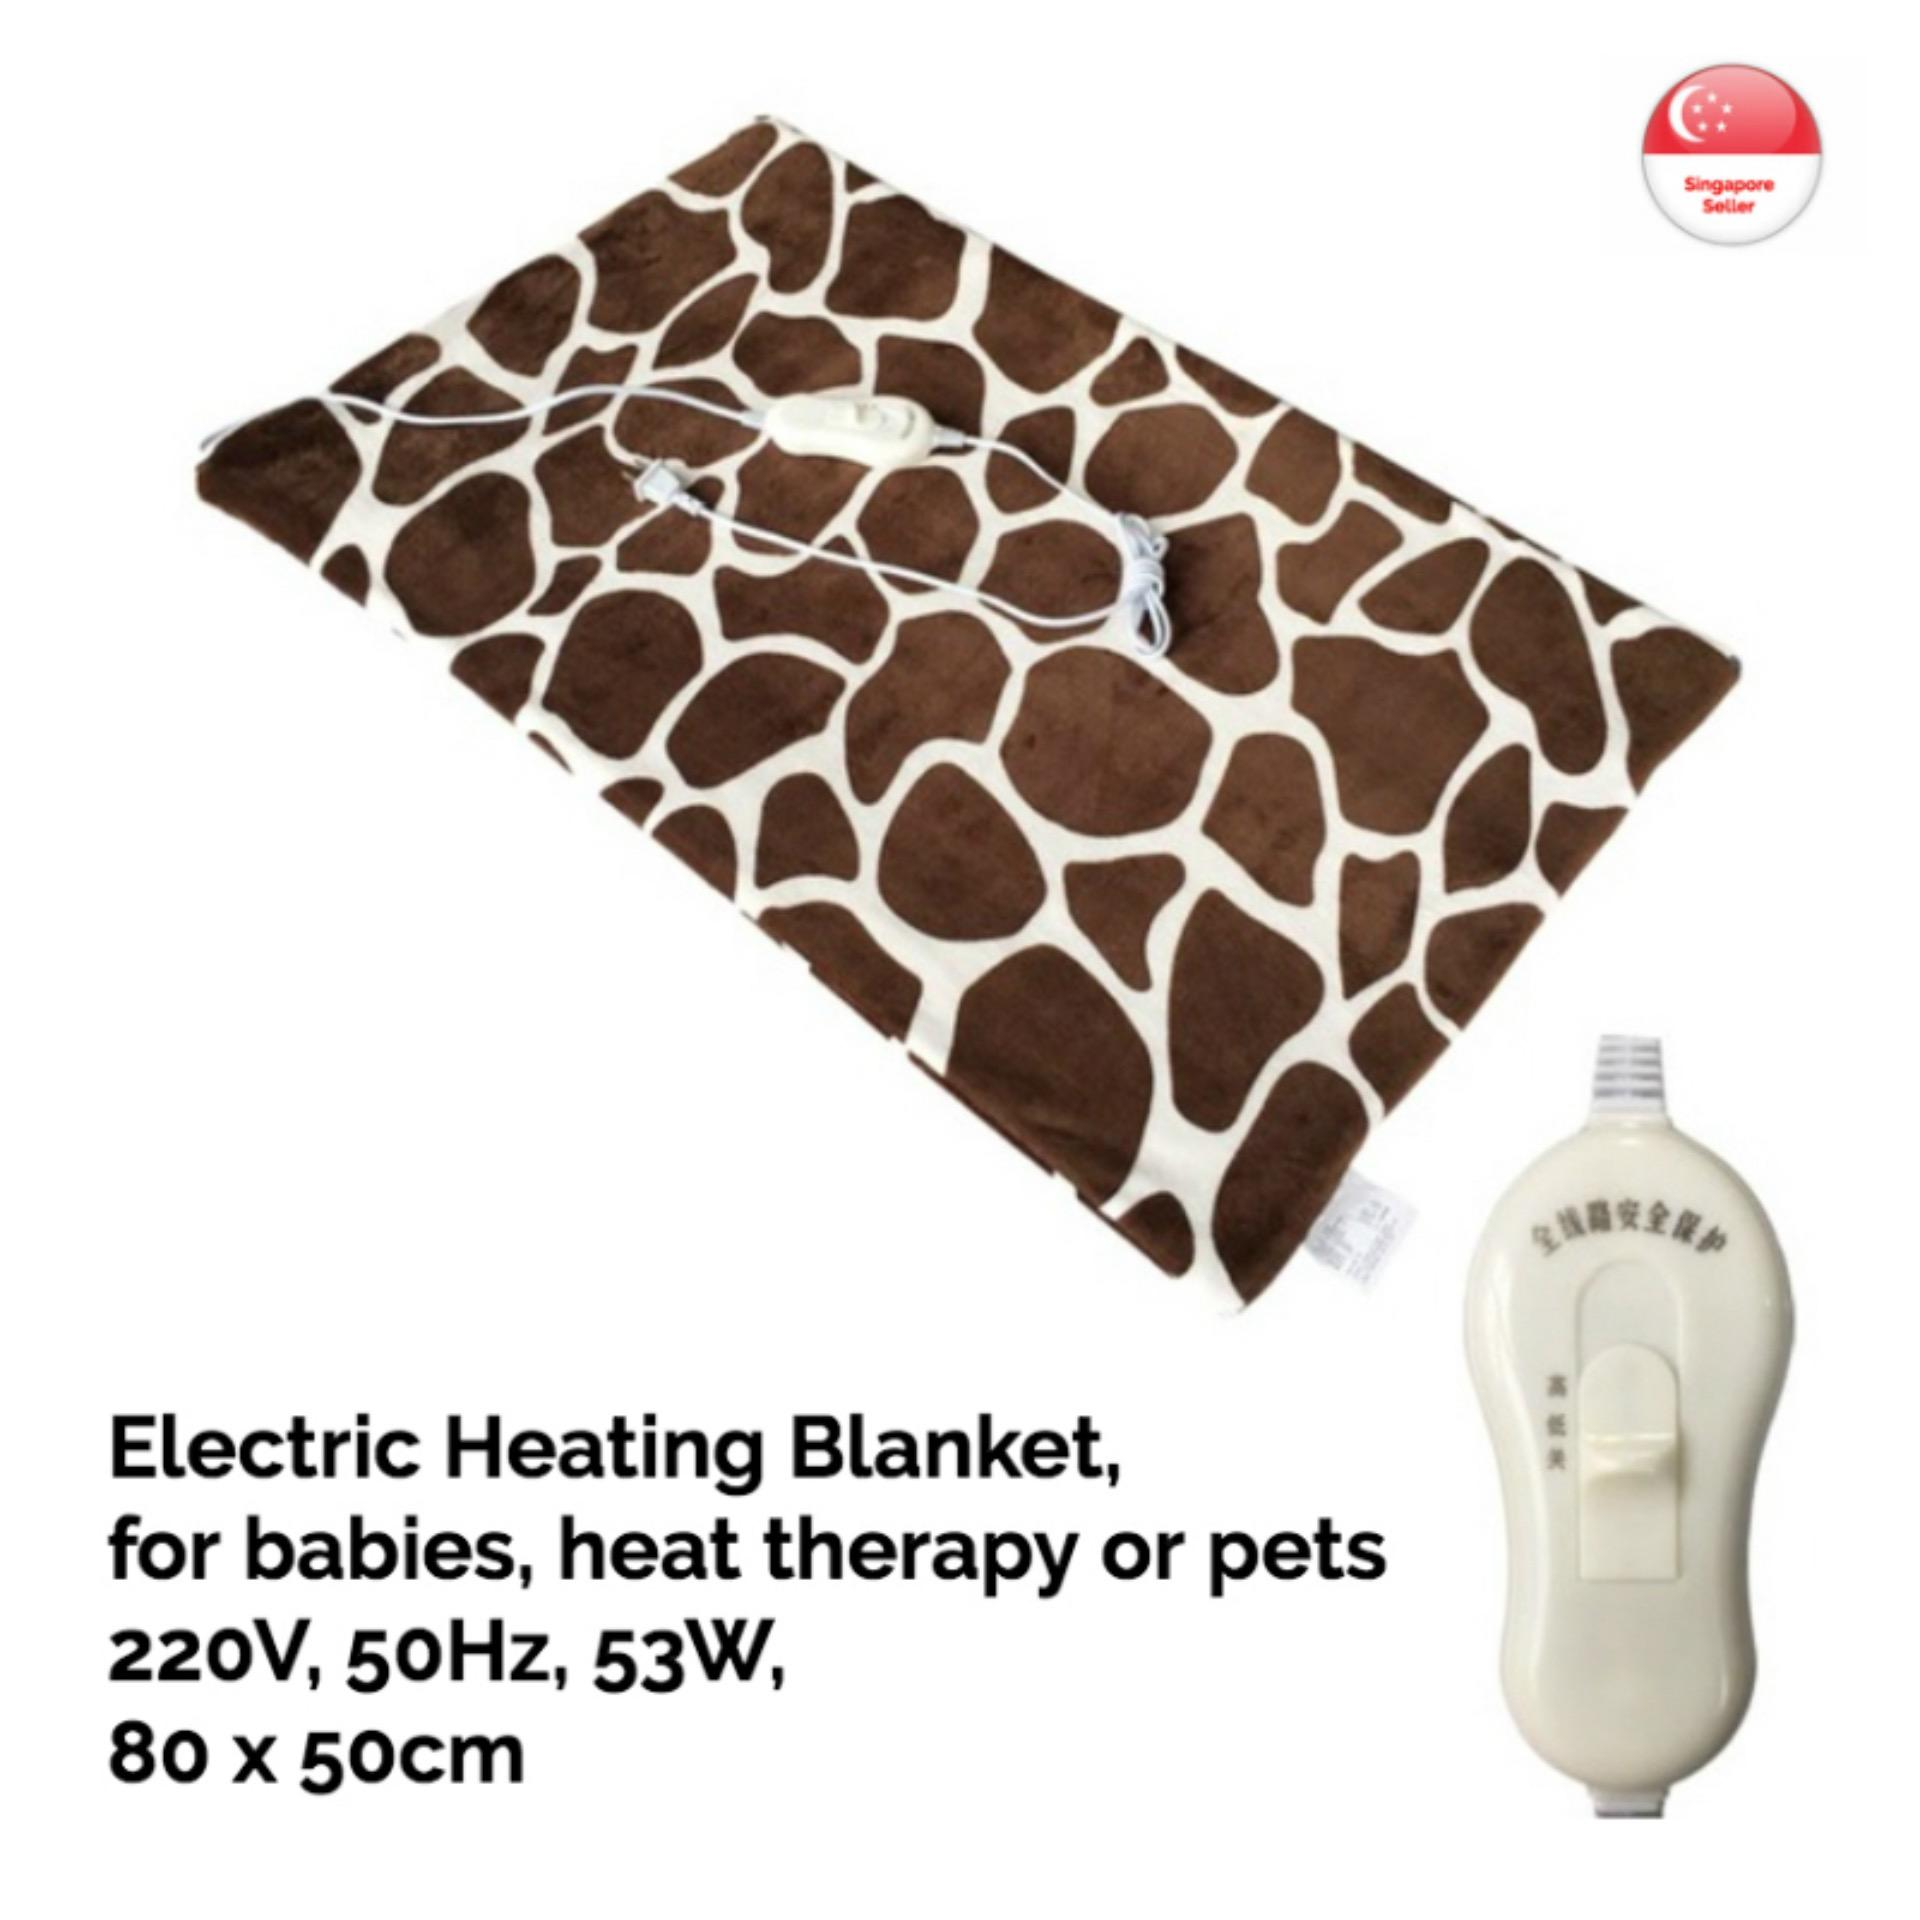 Electric Heating Blanket - Brown, 53w, 80 X 50cm, Pad, Mat, Scarf, Home, 2-Heating Levels, Heat, Therapy, Baby, Elderly, Pets, Mini, Ultra-Soft Fabric, Giraffe-Design By Bringit.